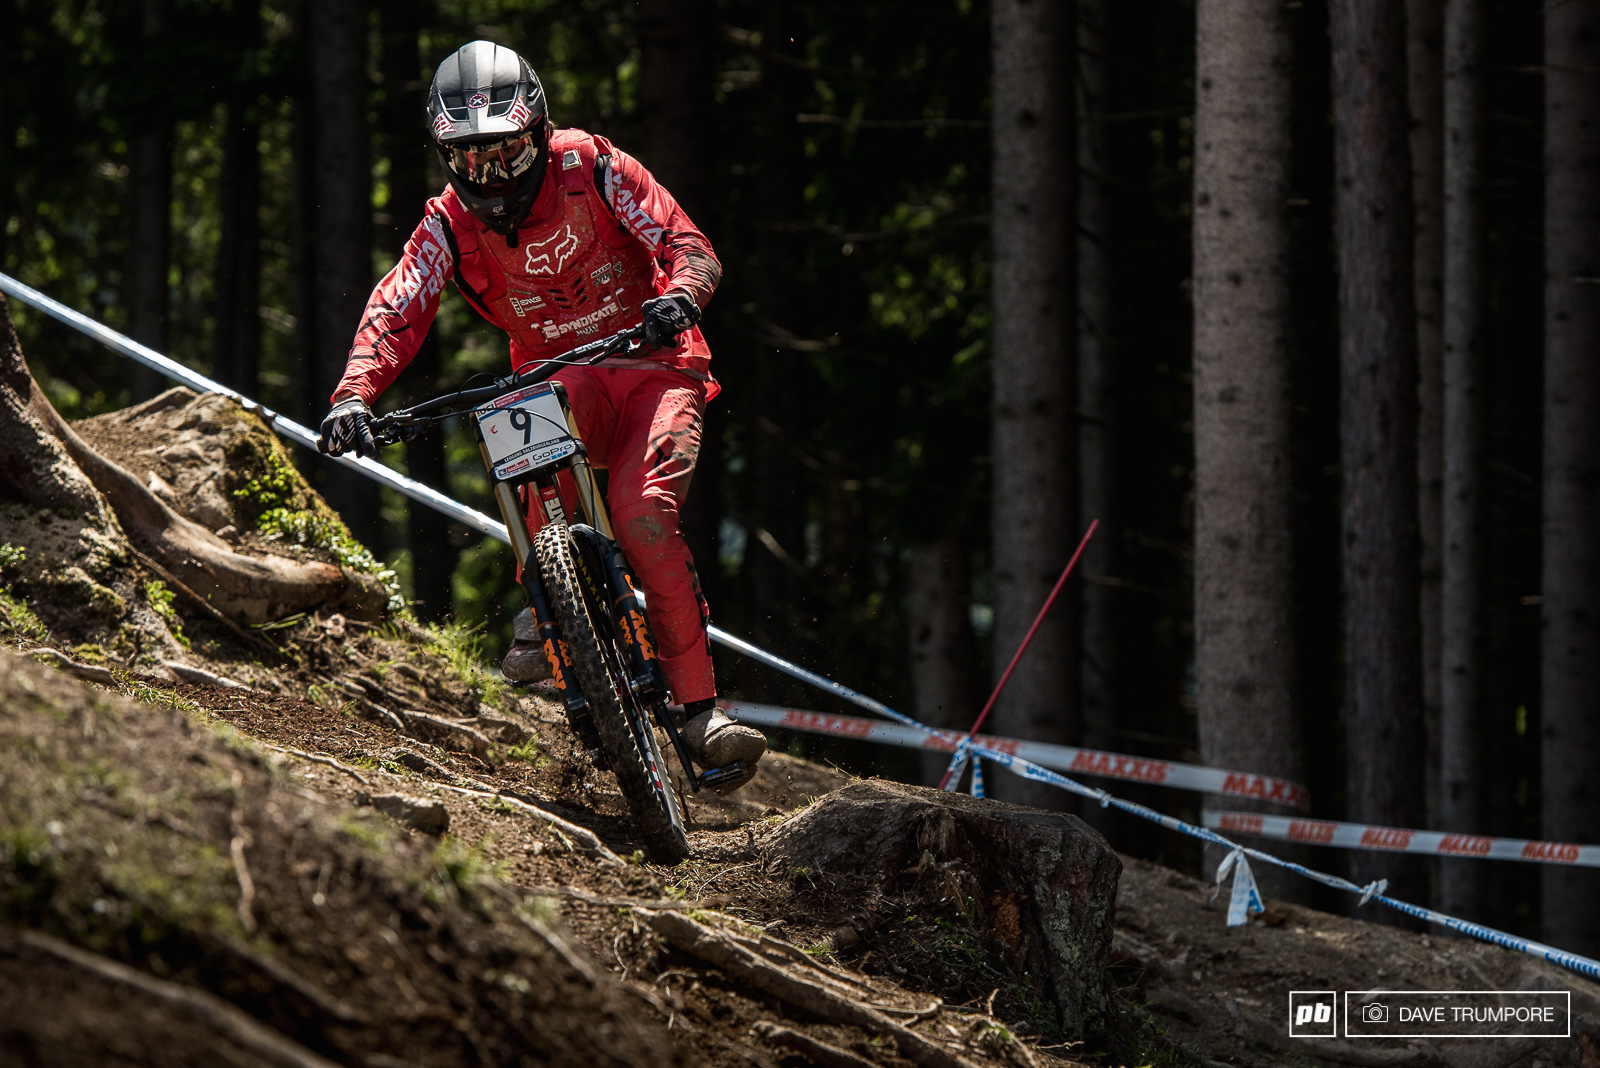 Josh Bryceland leans it into the off camber and rooted out clear cut section of the track.